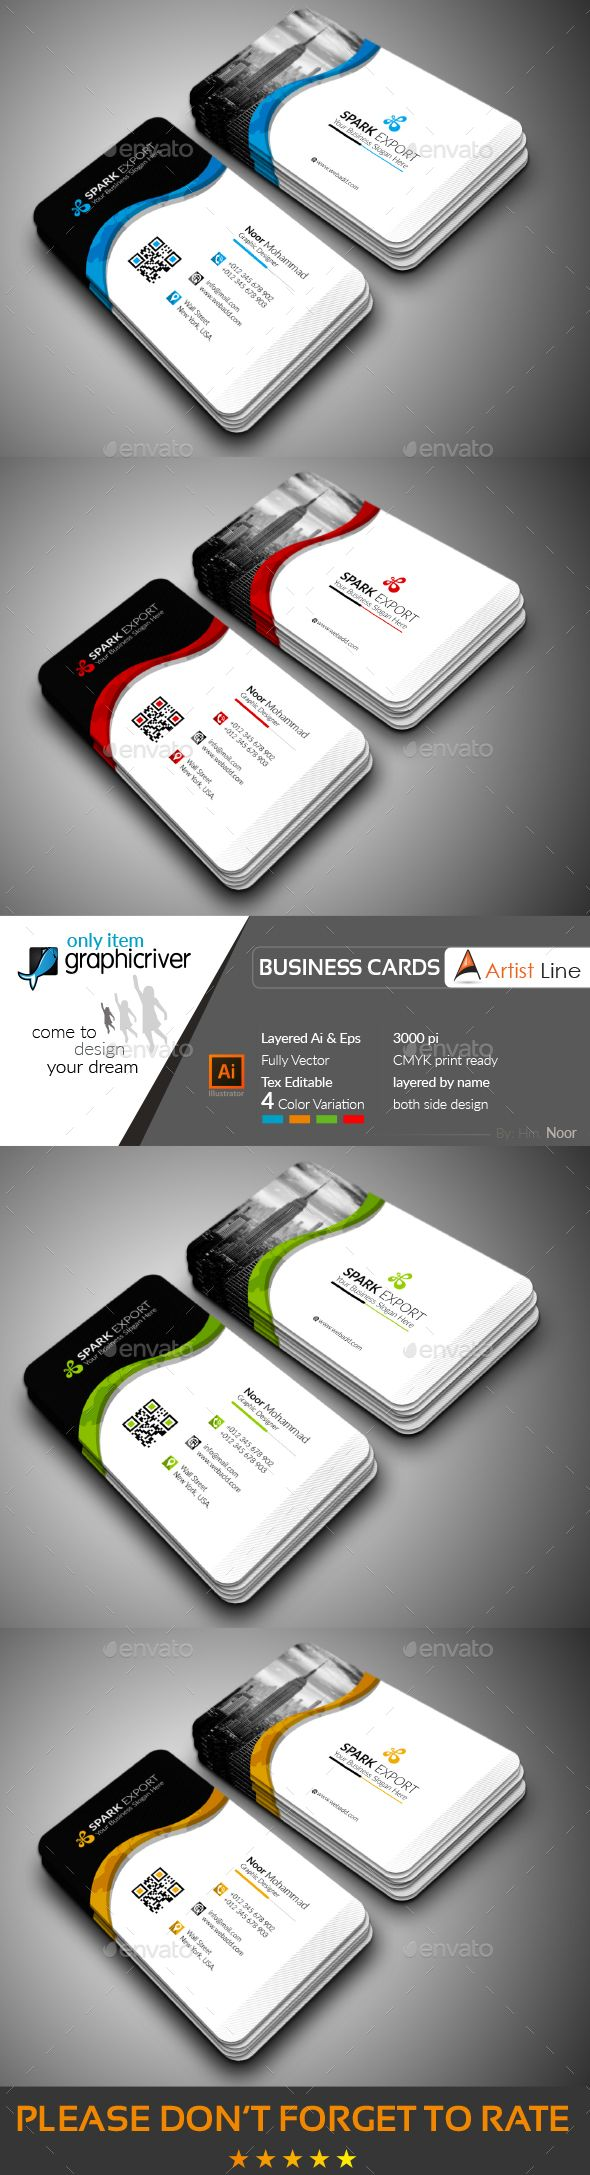 Exclusive Business Card Template Vector EPS, AI Illustrator ...